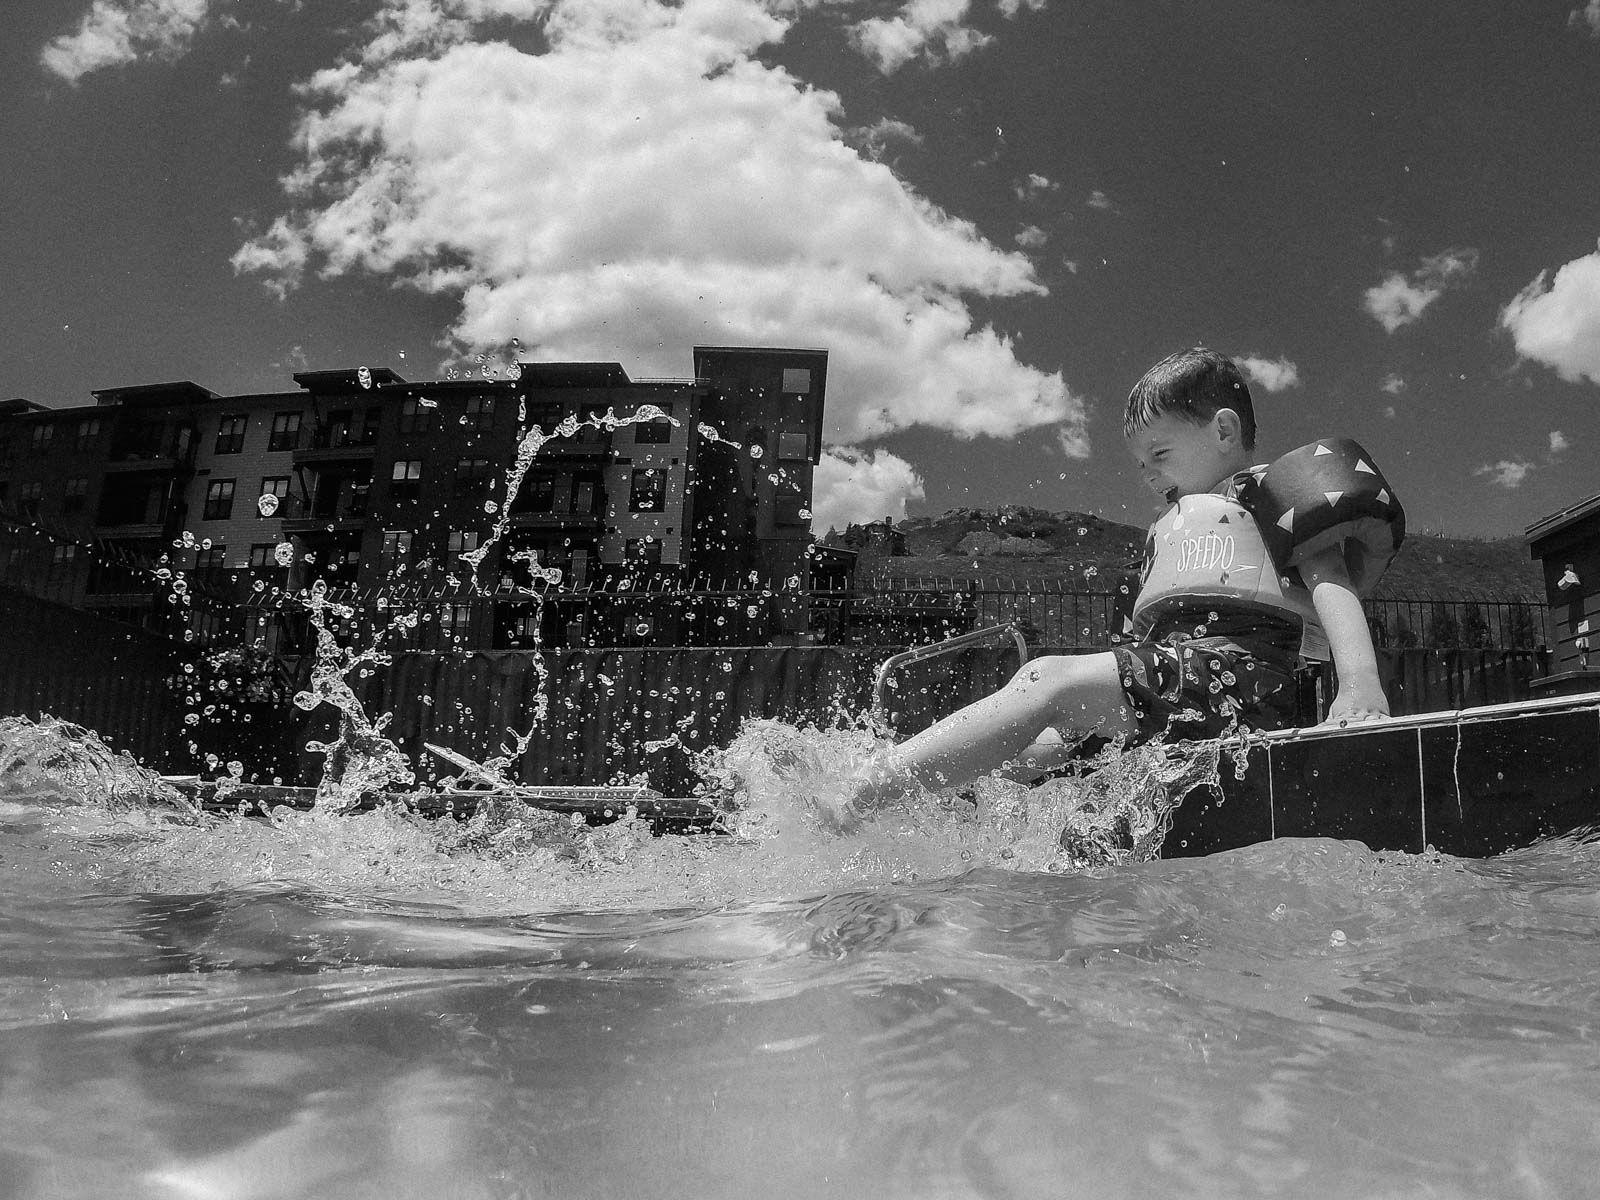 Black and white photo of child playing in water